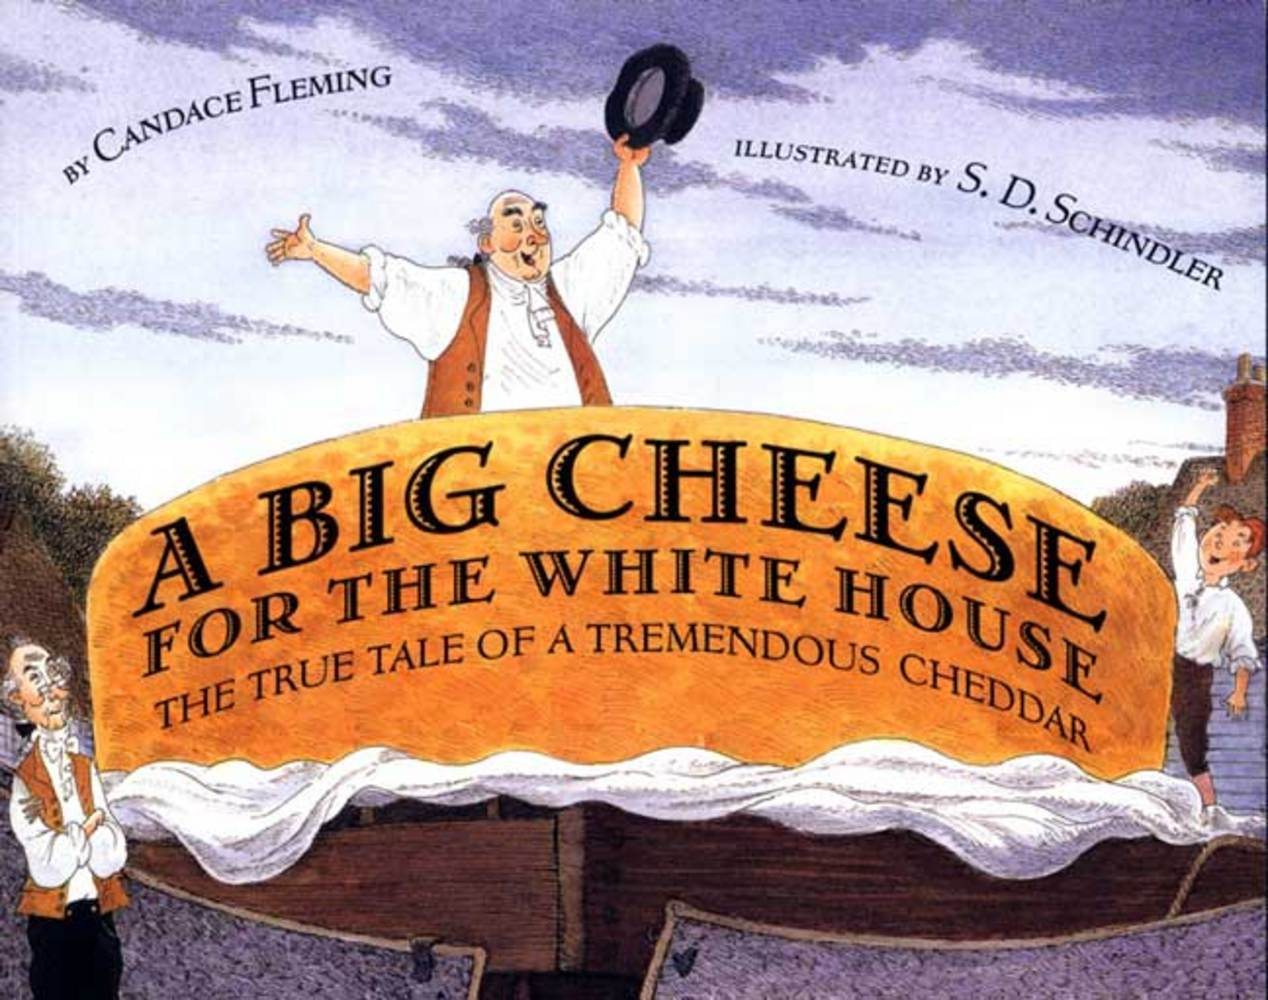 A big cheese for the white house candace fleming macmillan for Square fish publishing